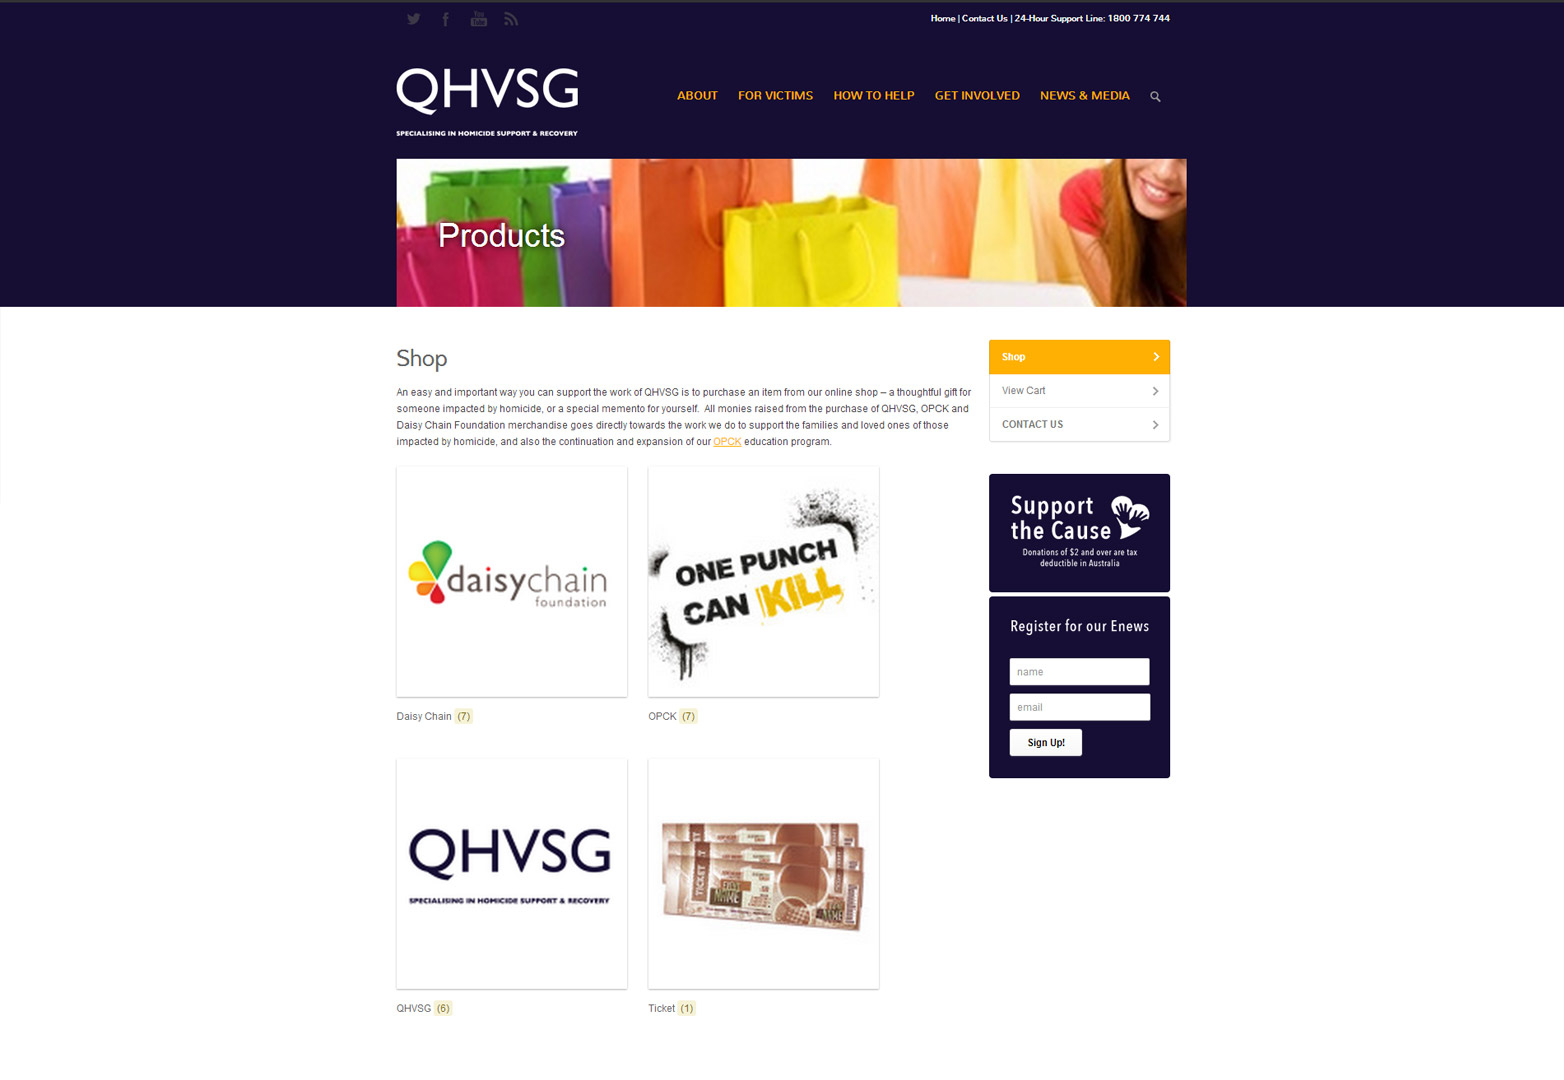 QHVSG Shop page desktop view